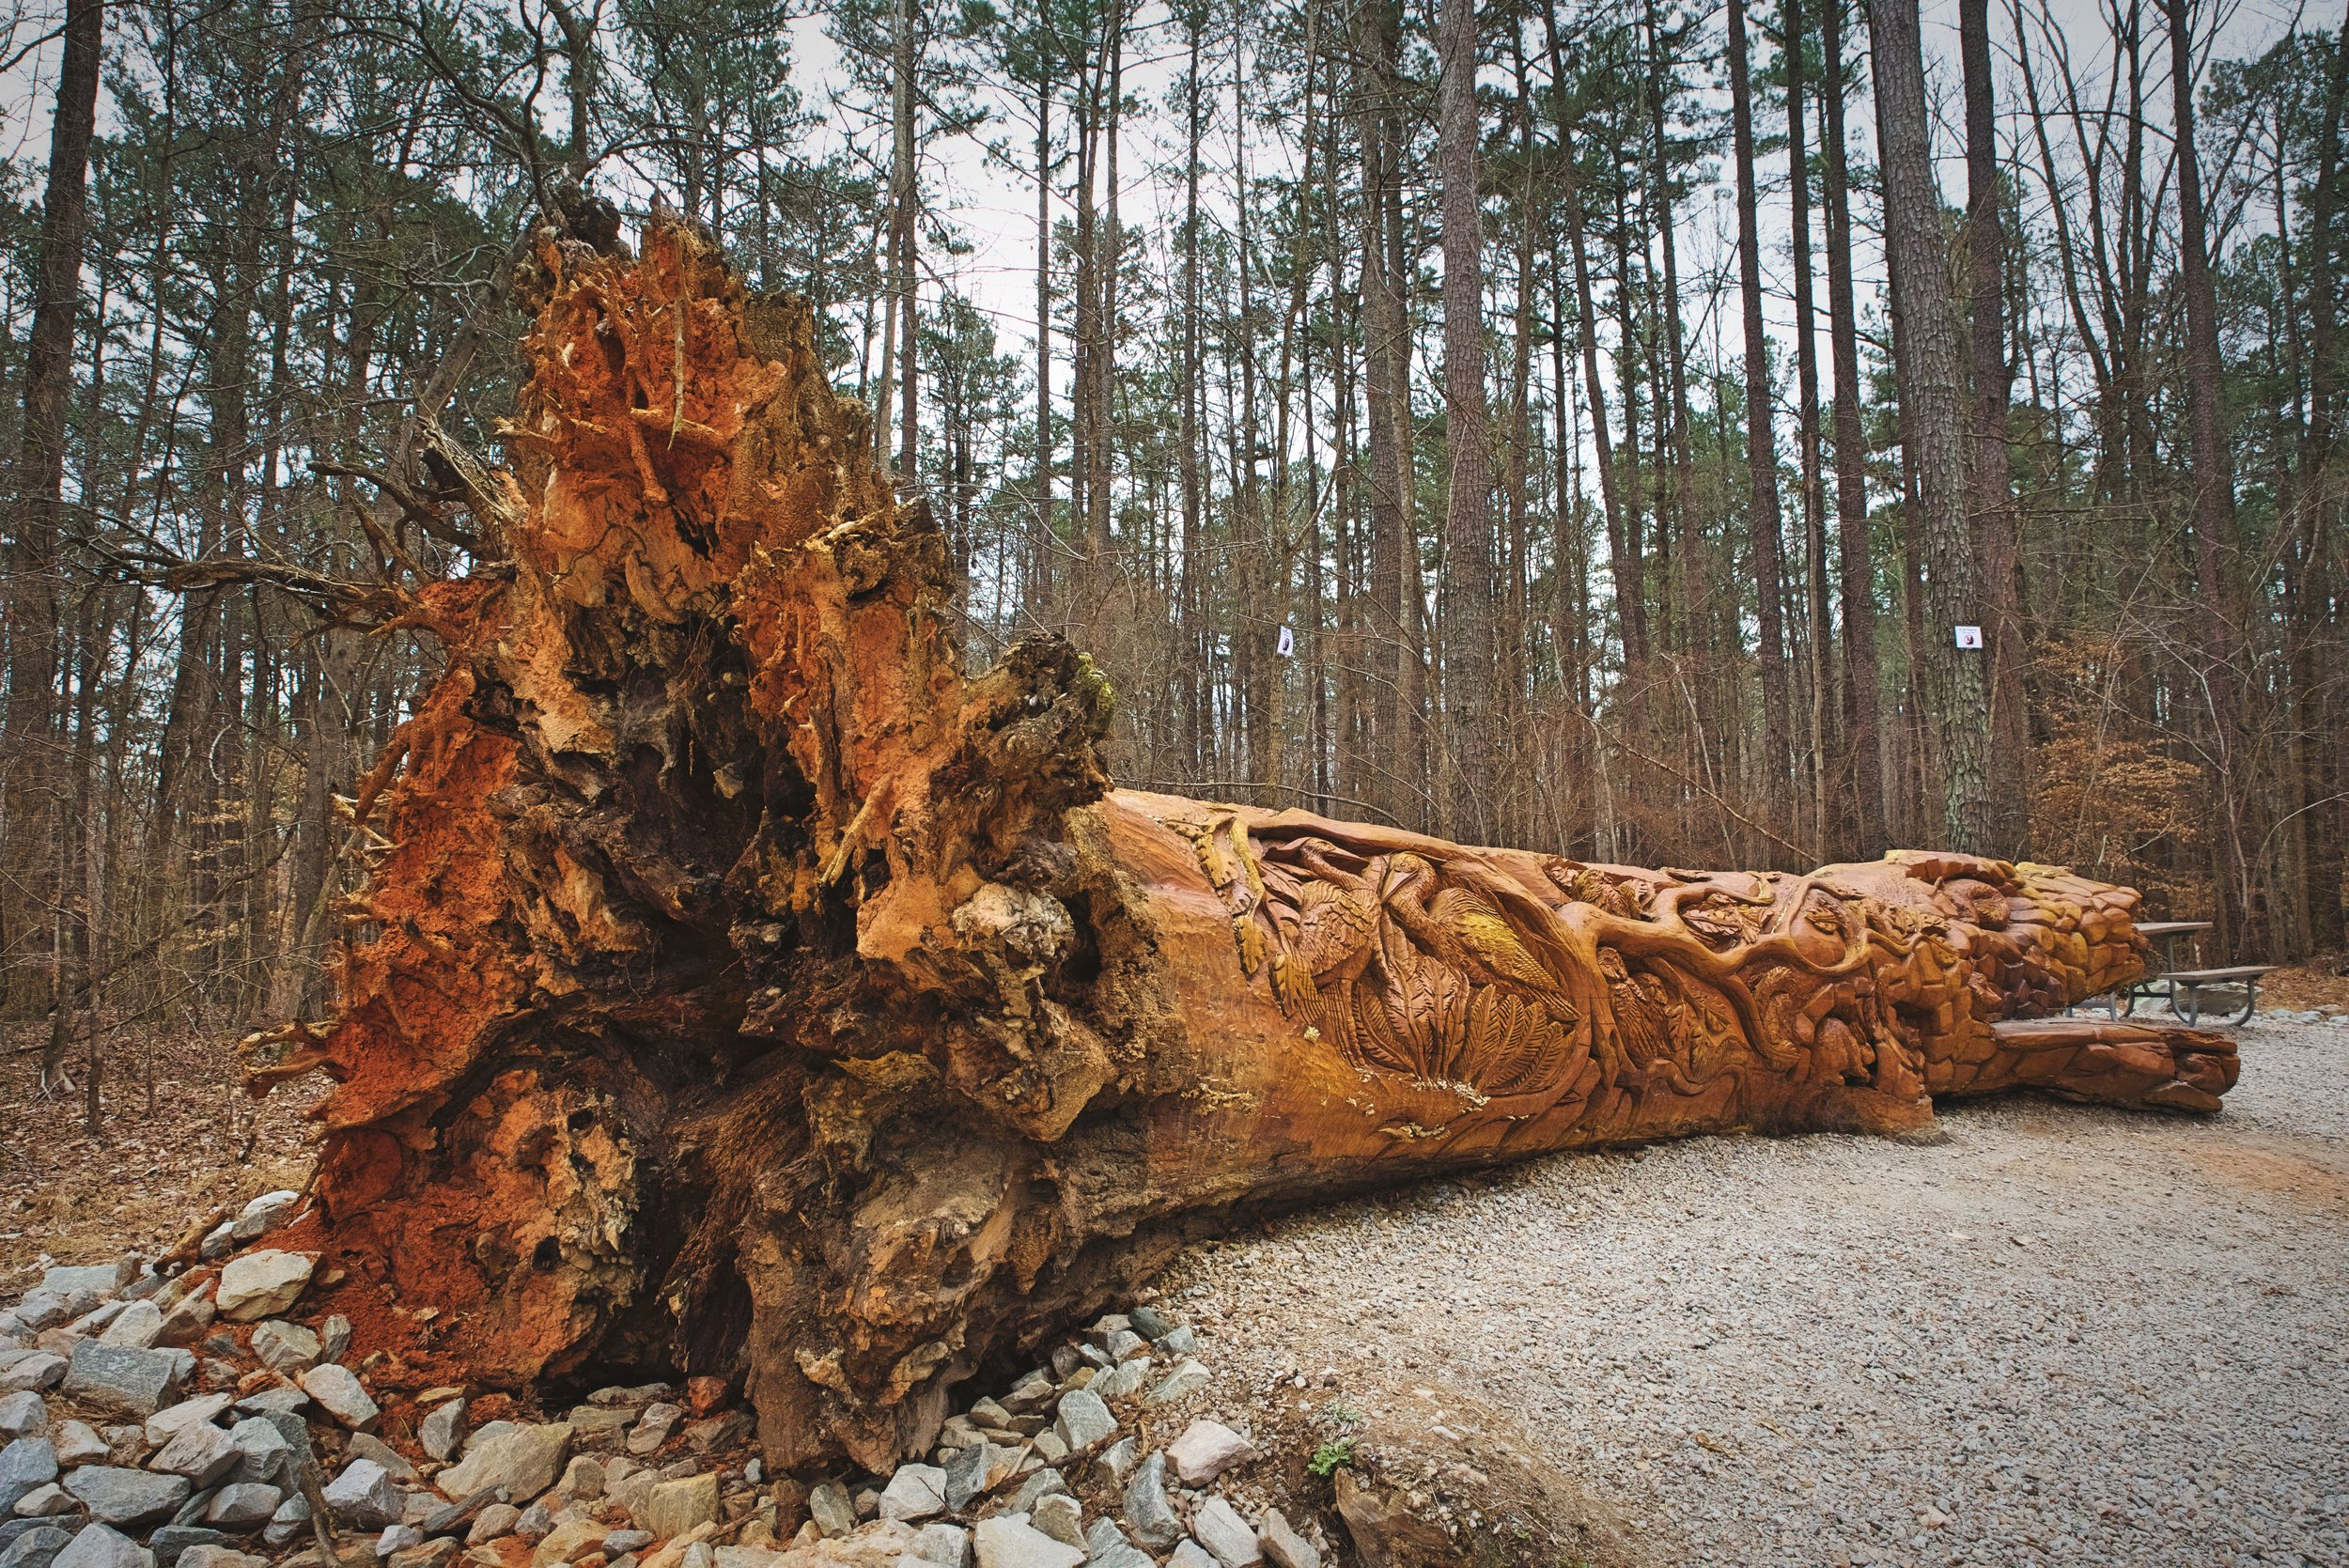 The chainsaw art is carved into the massive trunk of a fallen oak tree.